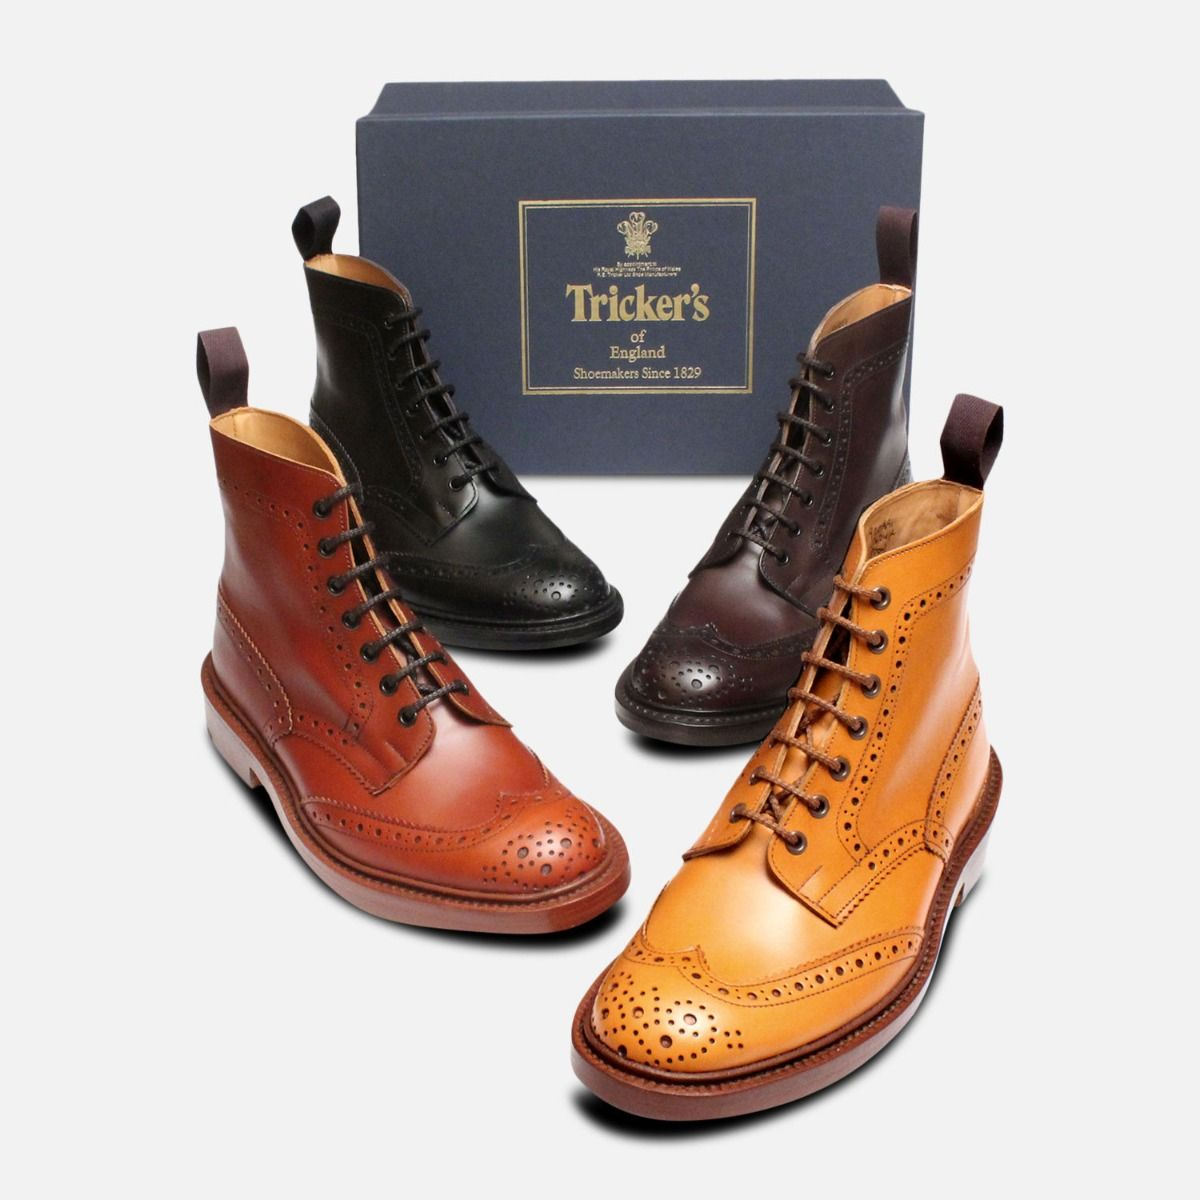 Trickers Stow Brown Dainite Brogue Boot